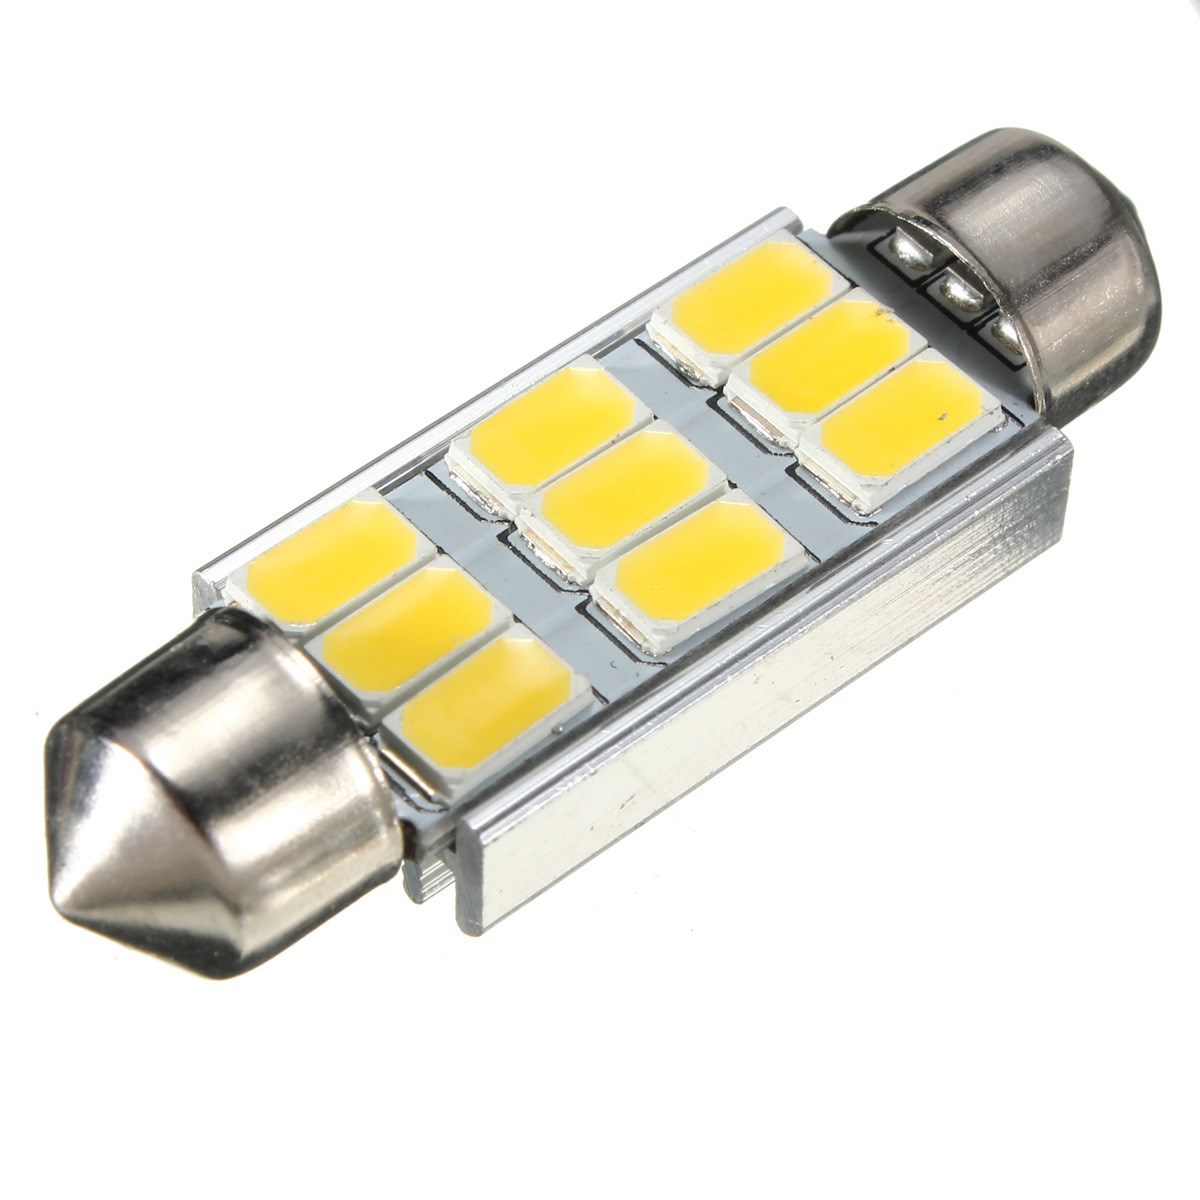 42mm 5630 SMD 9 LED 180LM 3.5W Canbus Error Free Car Auto LED Bulbs Interior Light Dome Festoon Bulb Warm White 3000K AC 12V New cyan soil bay 1x canbus error free white t10 5630 6 smd wedge led light door dome bulb w5w 194 168 921 interior lamp